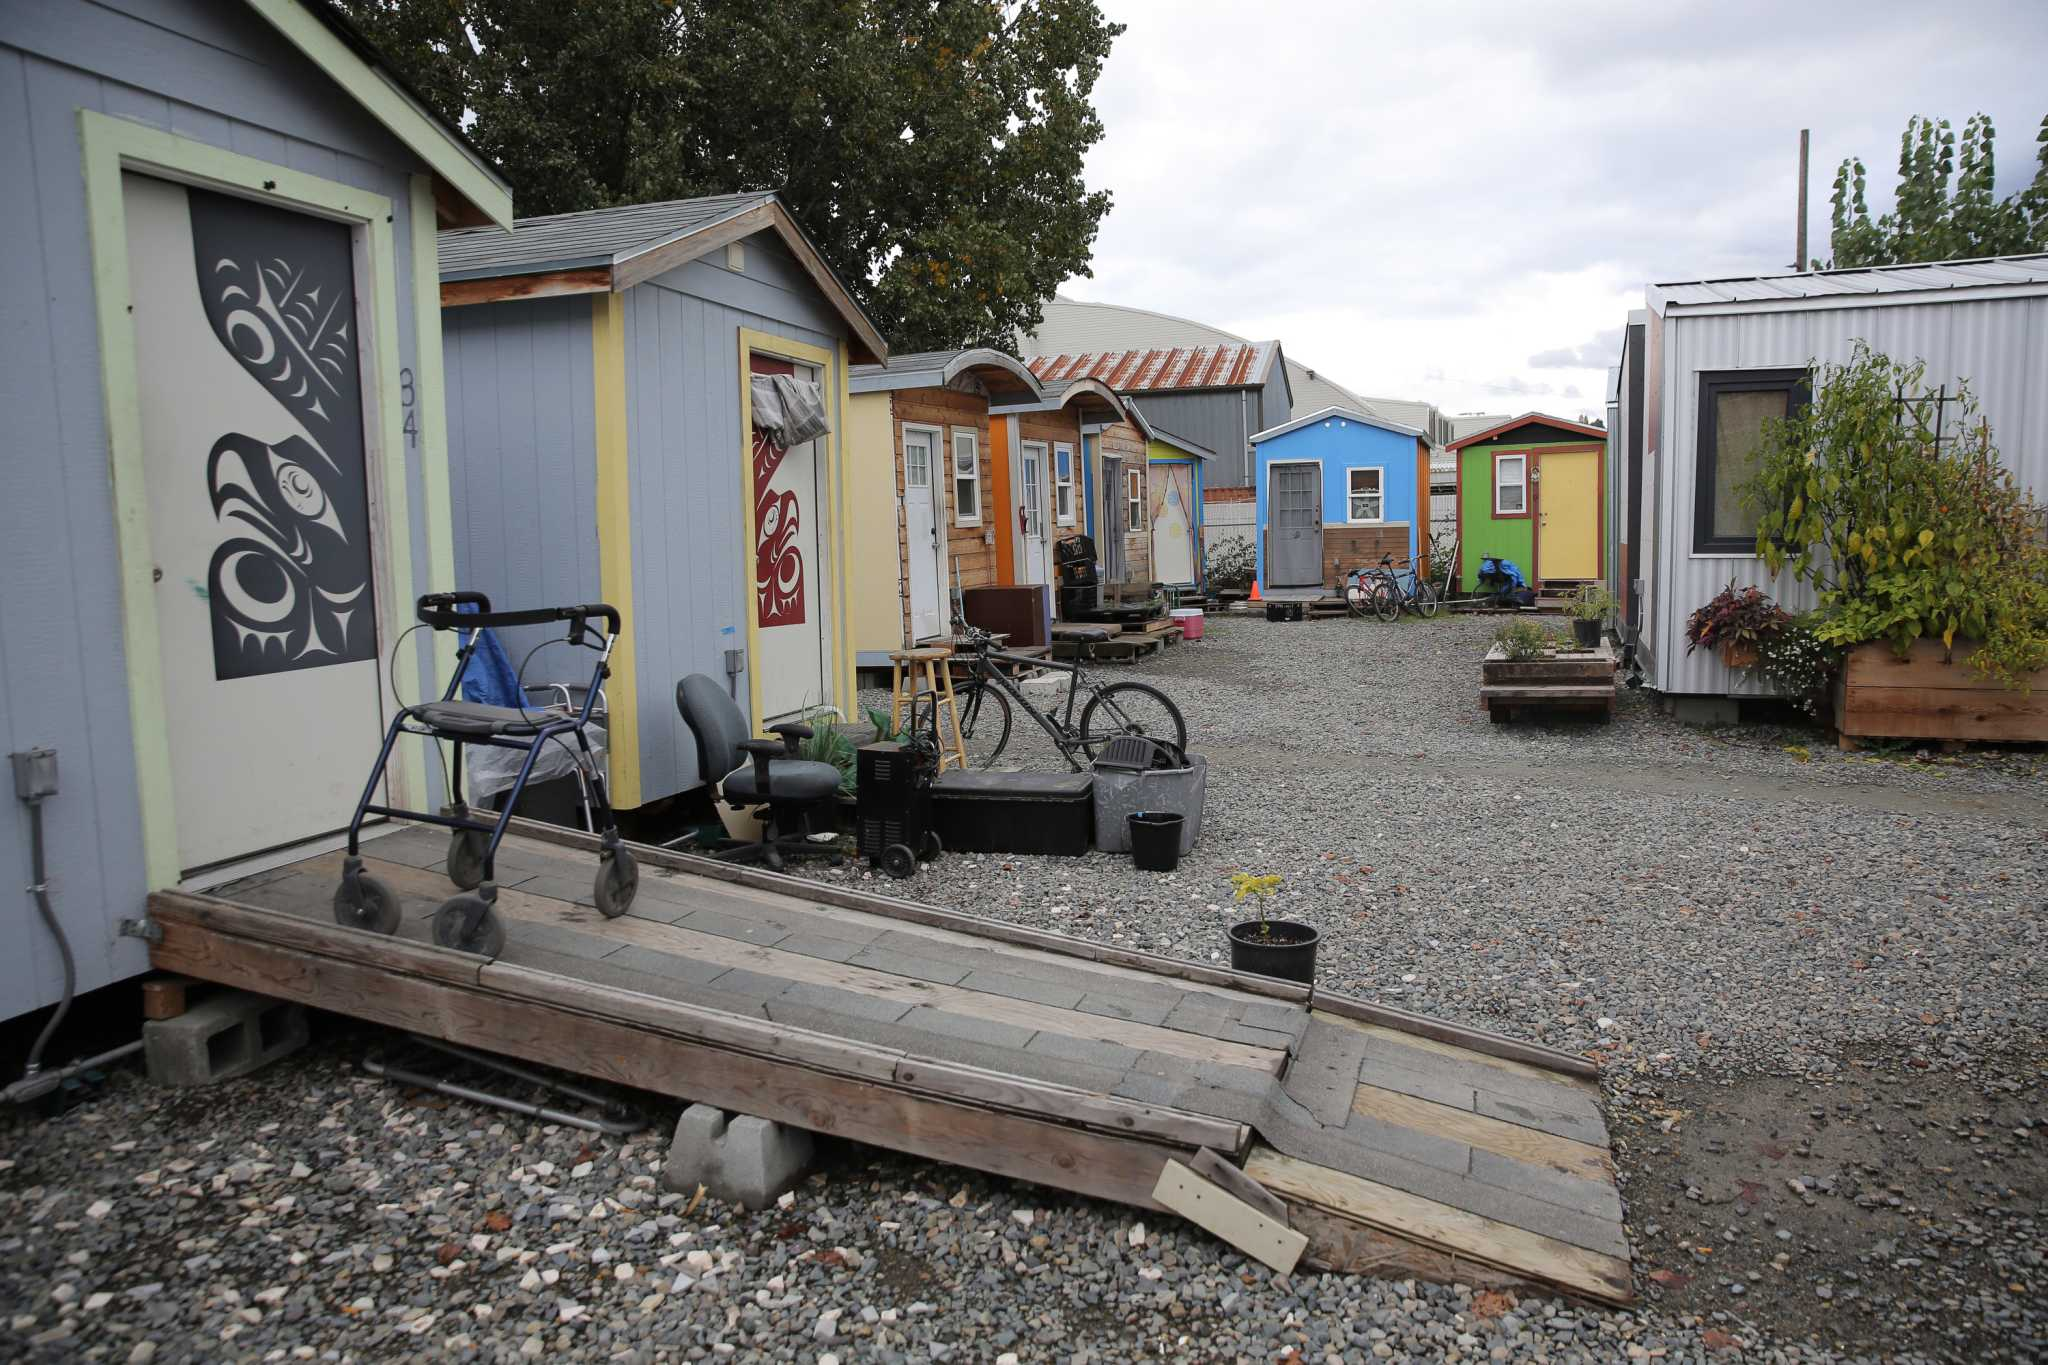 Seattle councilmember pushes for increasing number of tiny house villages